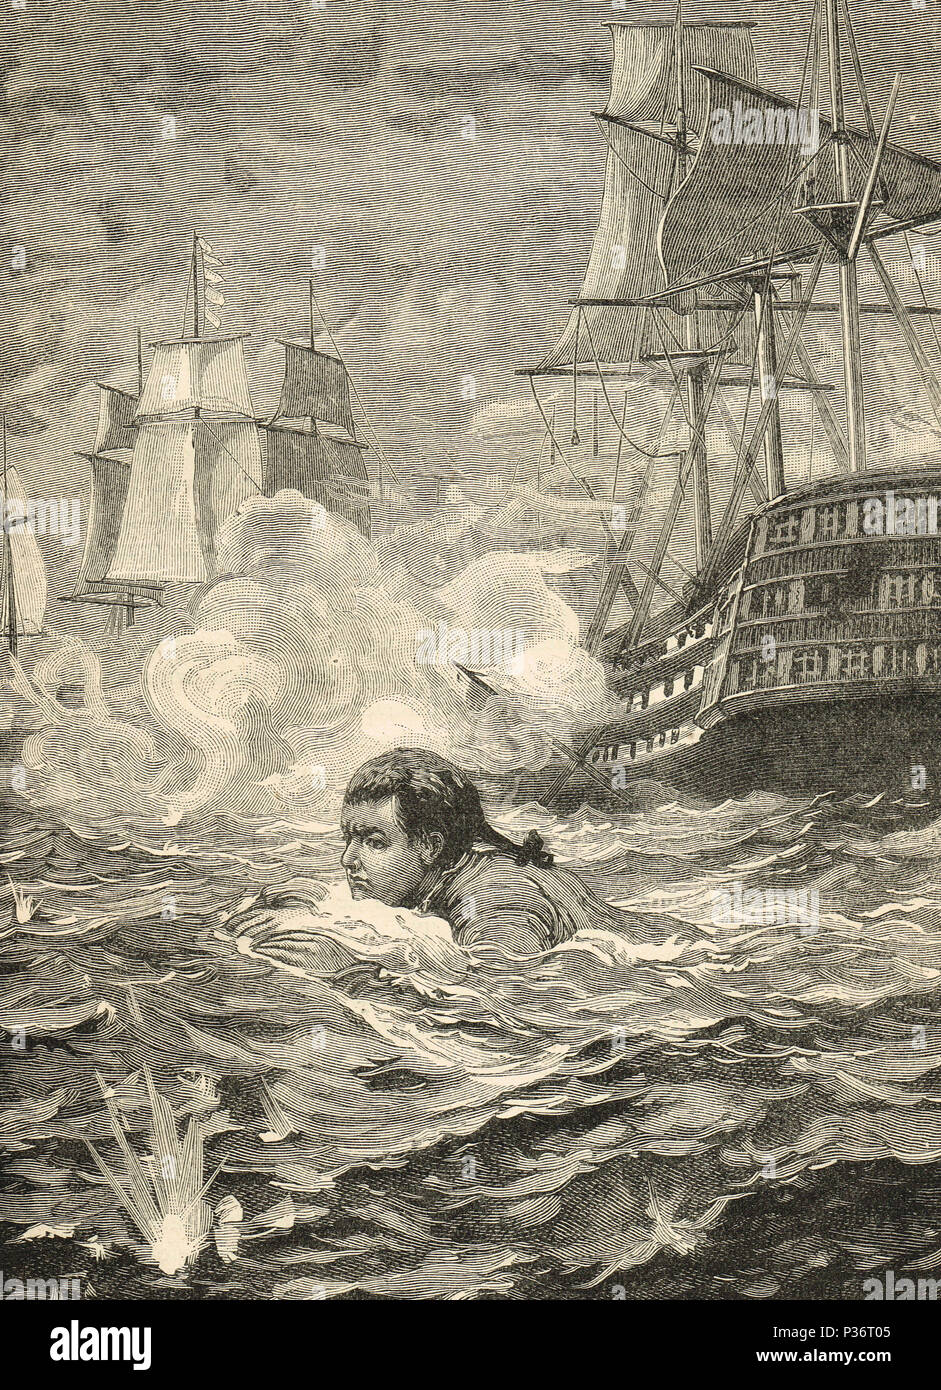 A man swimming for his life, Bombardment of Algiers, 27 August 1816 Stock Photo